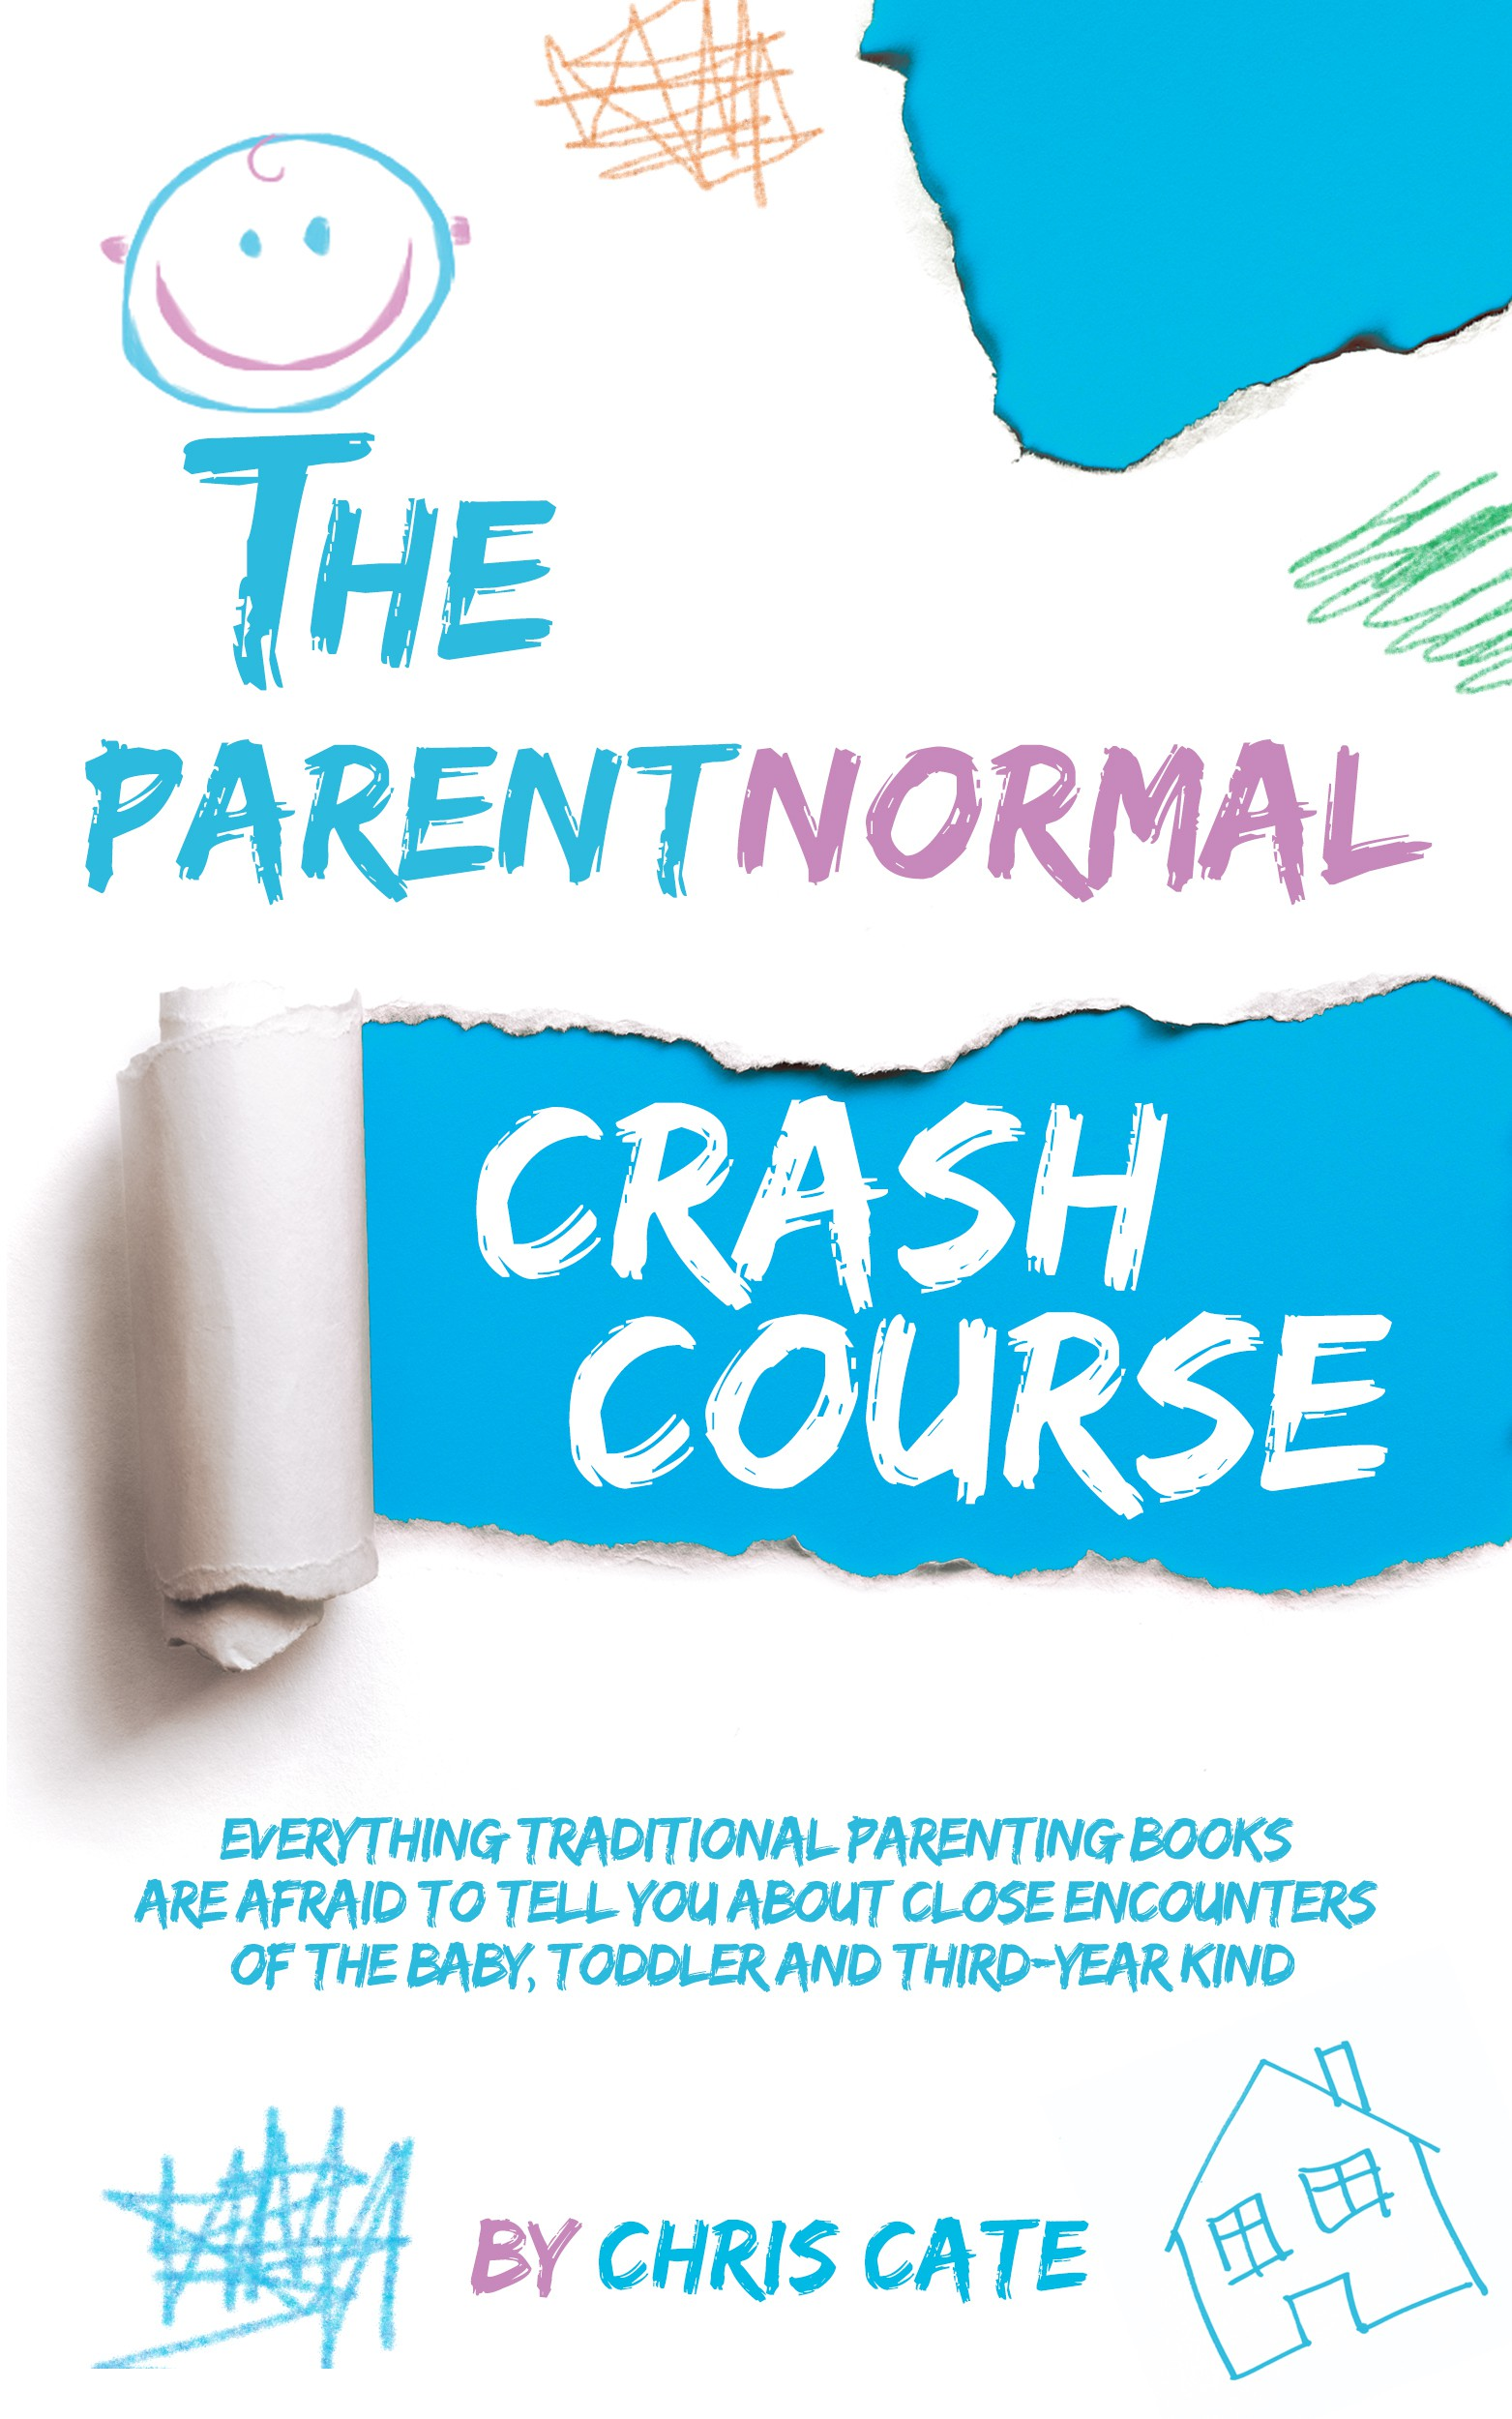 Design book #1 in the highly-anticipated ParentNormal humor book series